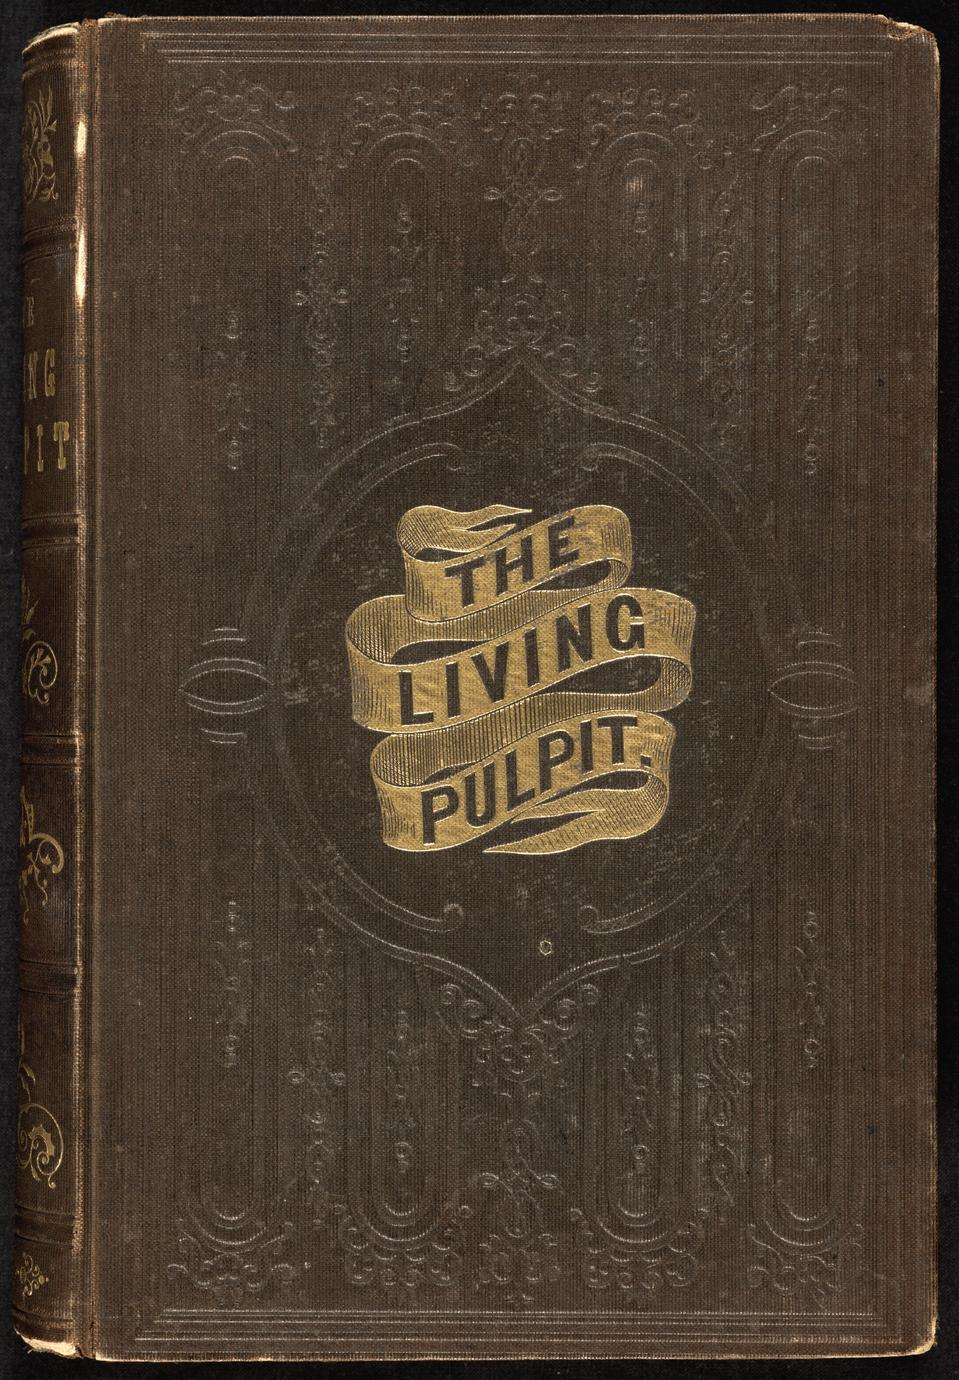 The living pulpit ; or, Eighteen sermons by eminent living divines of the Presbyterian Church (1 of 2)